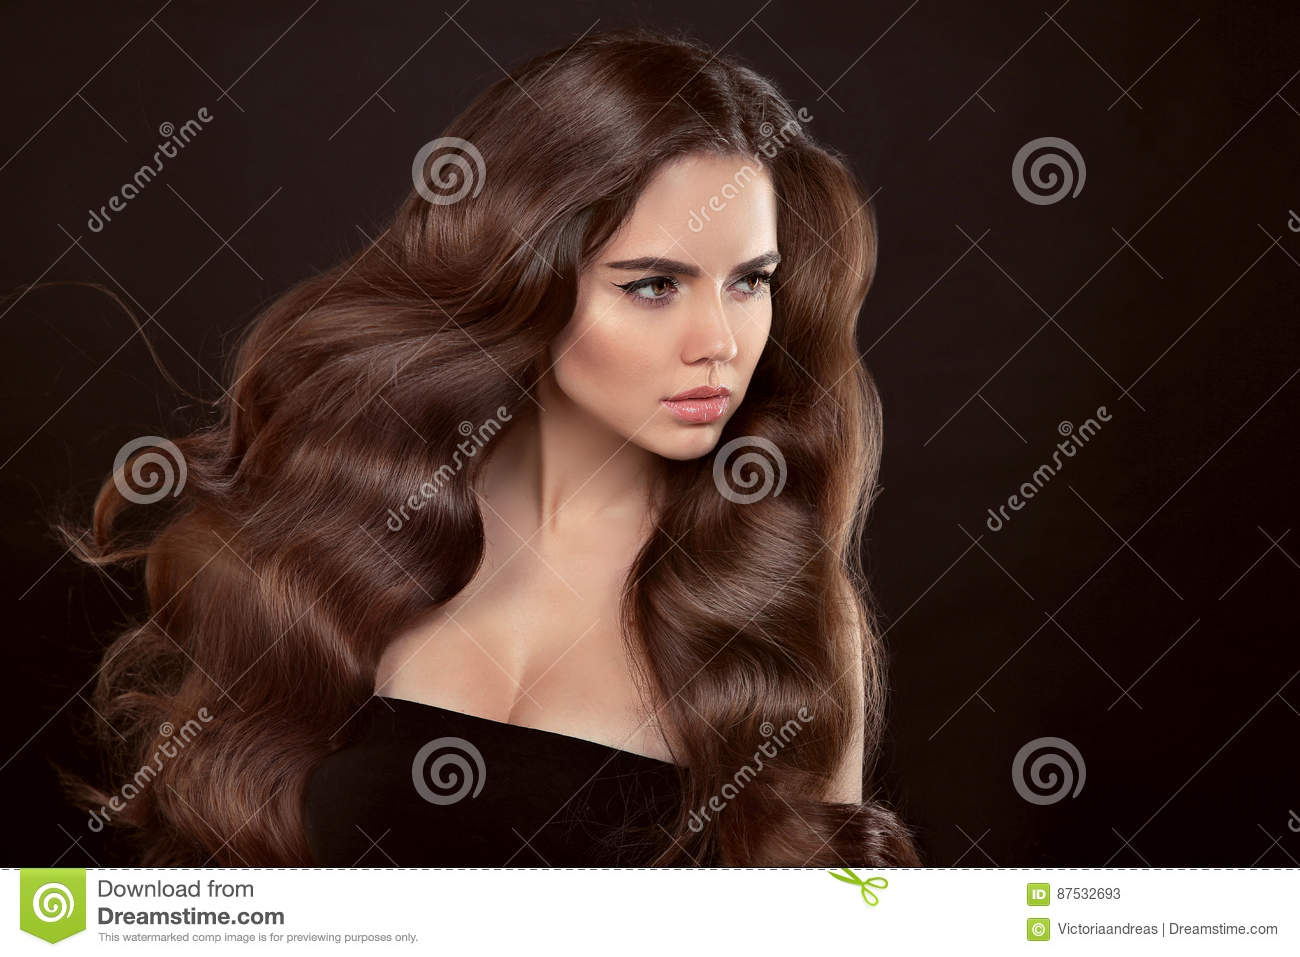 Healthy hair. Wavy hairstyle. Beautiful brunette woman with clean skin and shiny brown straight long hair isolated on black